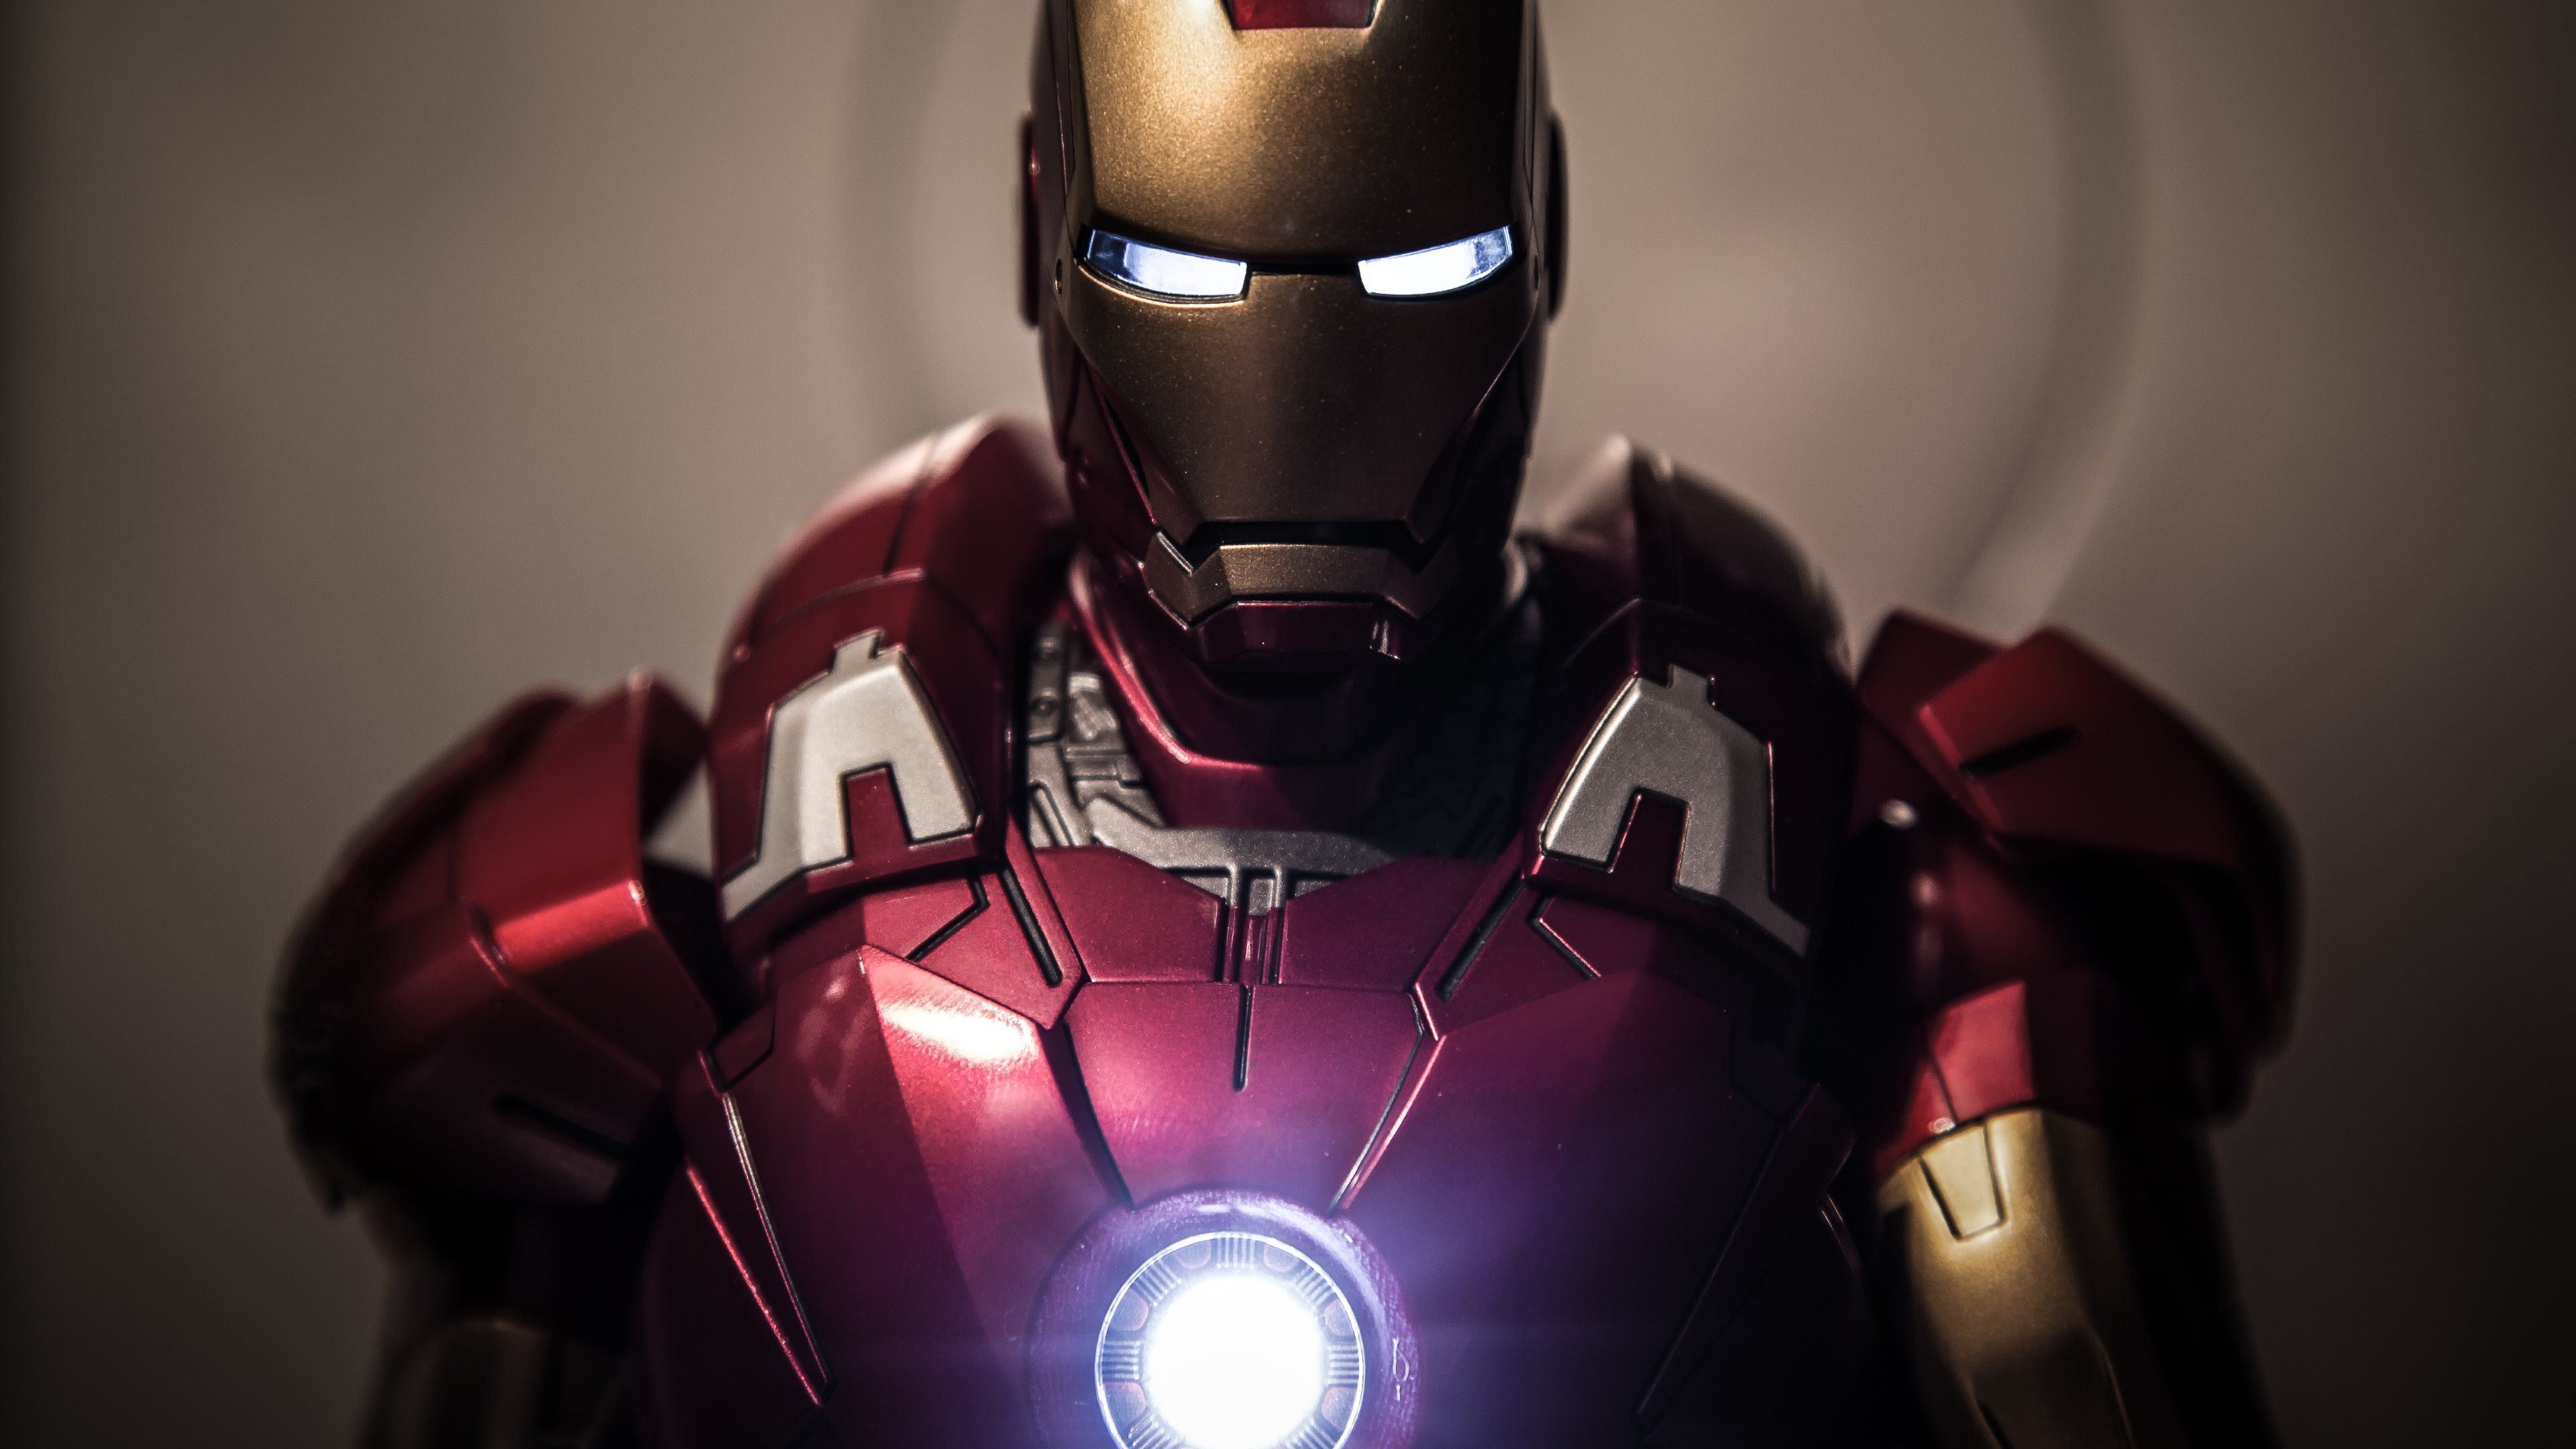 Pin By Shane Carder On Iron Men In The Avengers Iron Man Wallpaper Iron Man Hd Wallpaper Iron Man Pictures